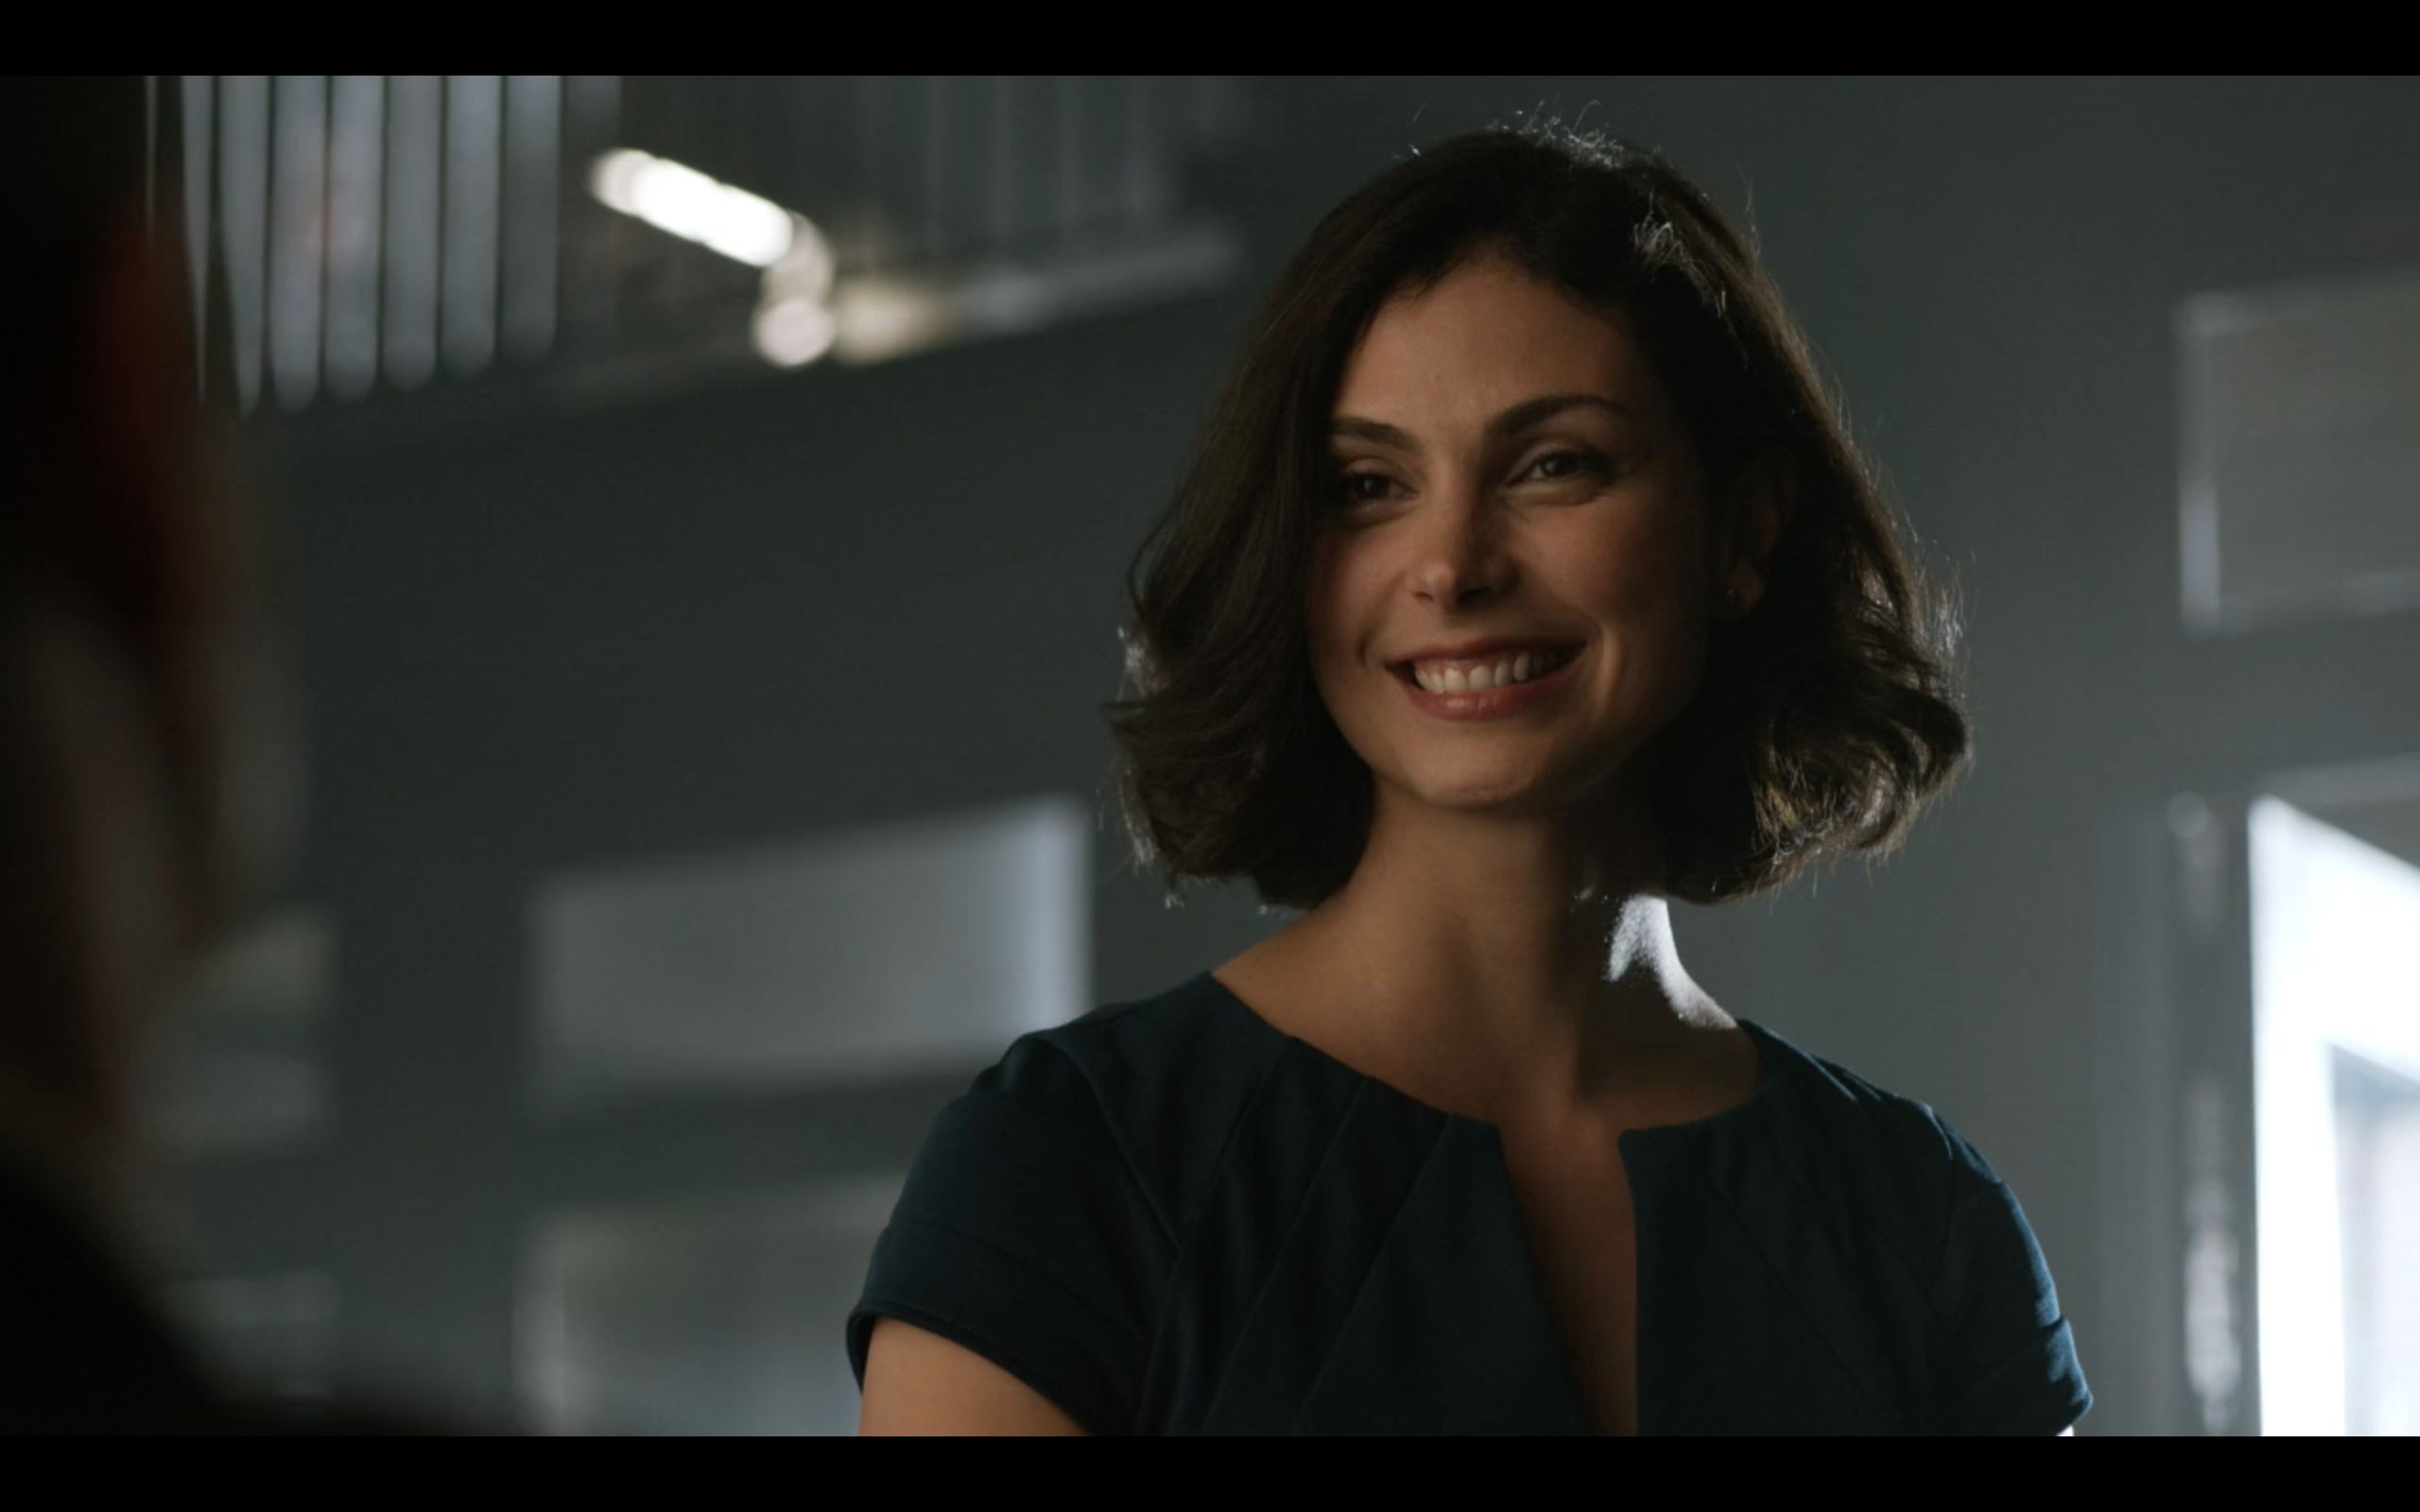 Morena Baccarin as Dr Leslie Thompkins in 'Gotham'